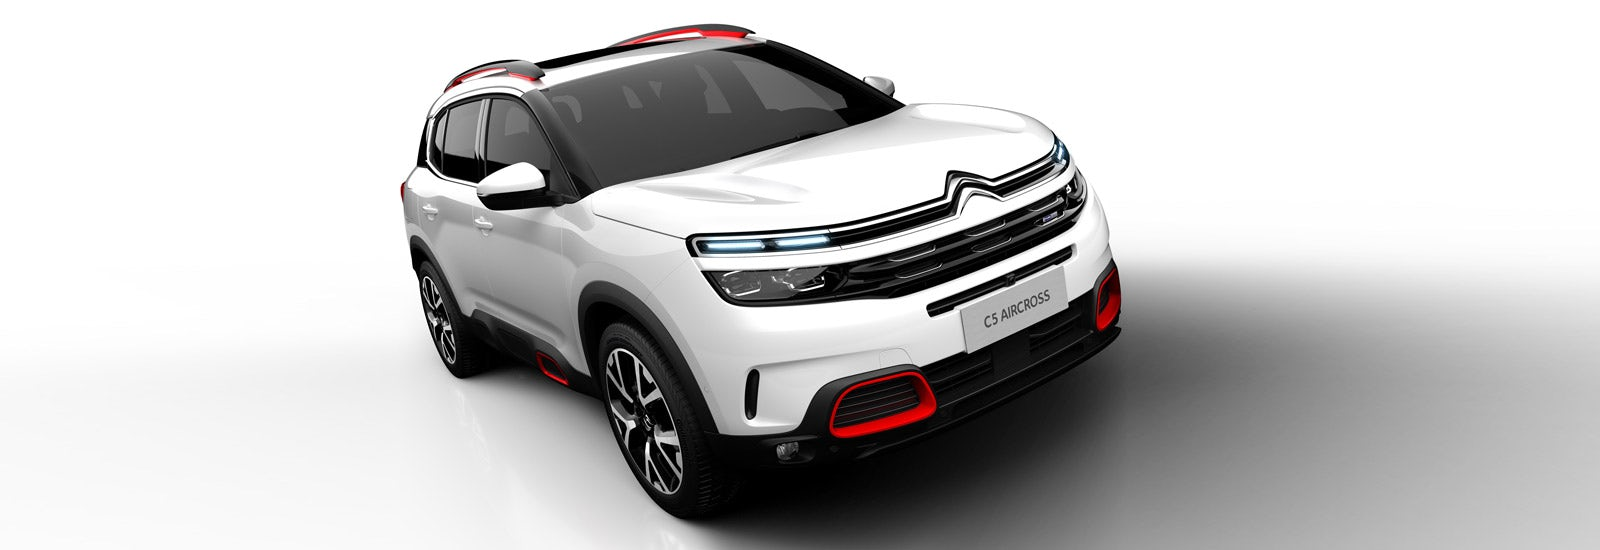 2017 citroen c5 aircross price specs release date carwow. Black Bedroom Furniture Sets. Home Design Ideas